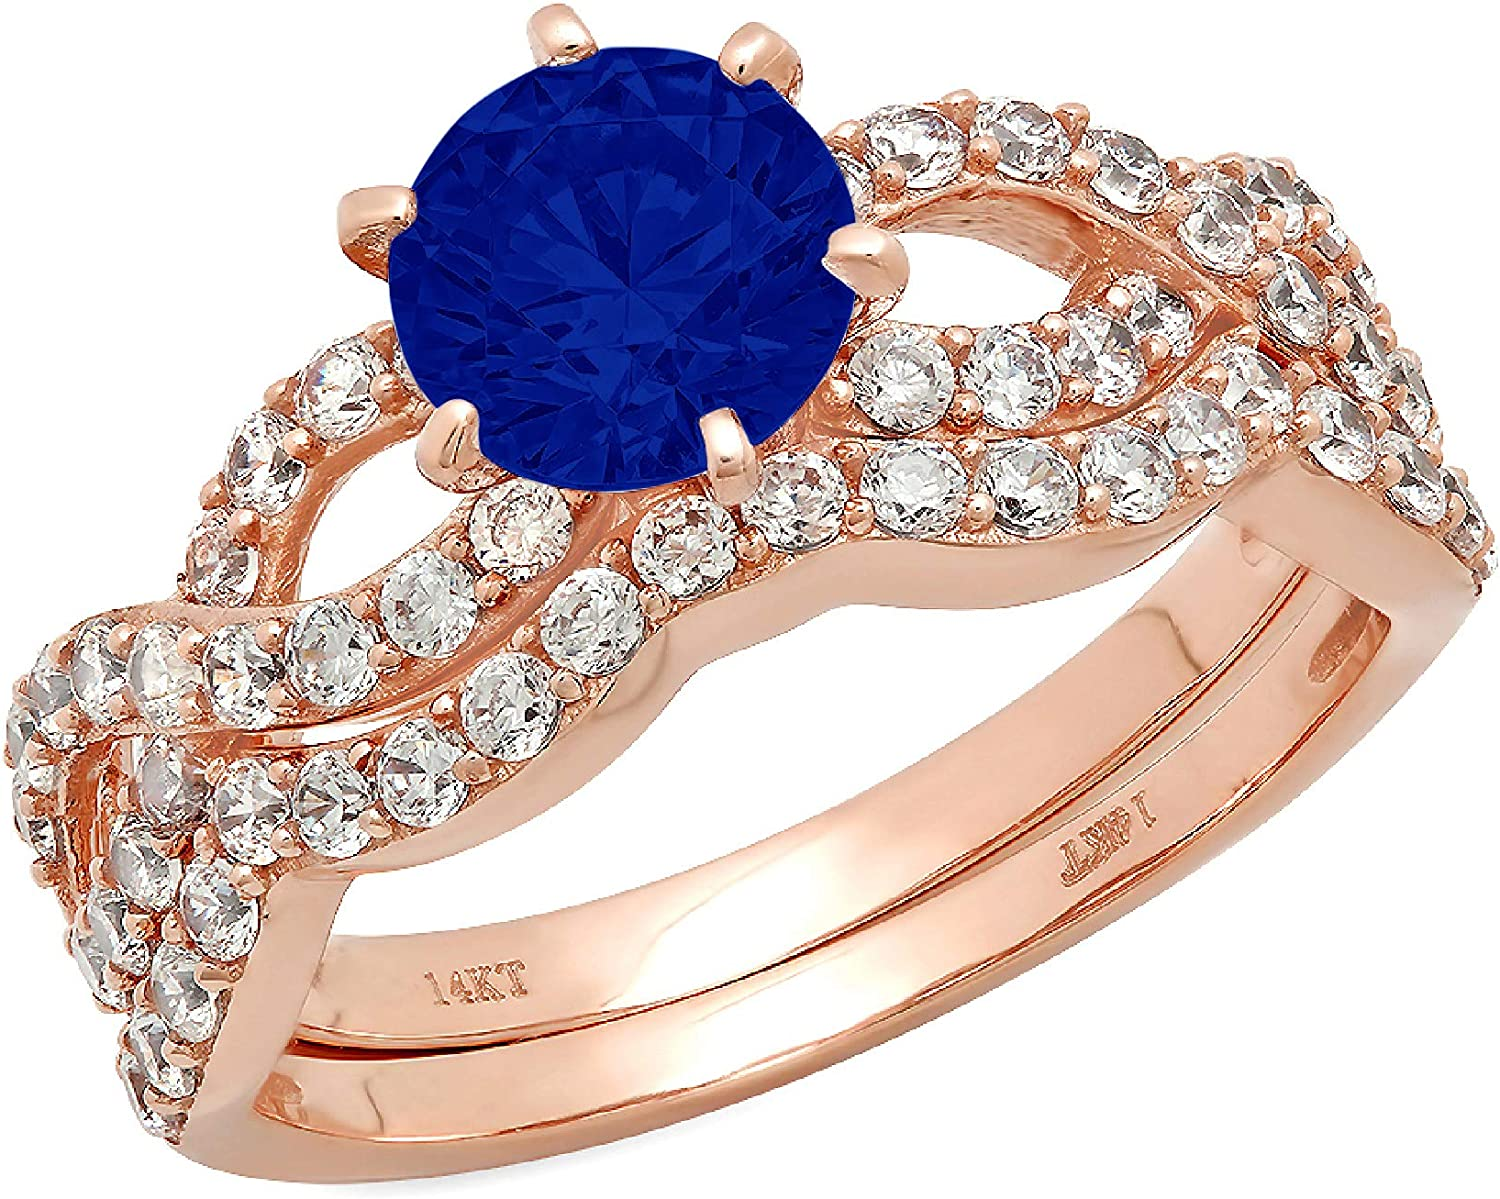 1.49ct Round Cut Halo Pave Solitaire Split Shank Accent Ideal Flawless Simulated CZ Blue Sapphire Engagement Promise Designer Anniversary Wedding Bridal ring band set Curved 14k Rose Gold